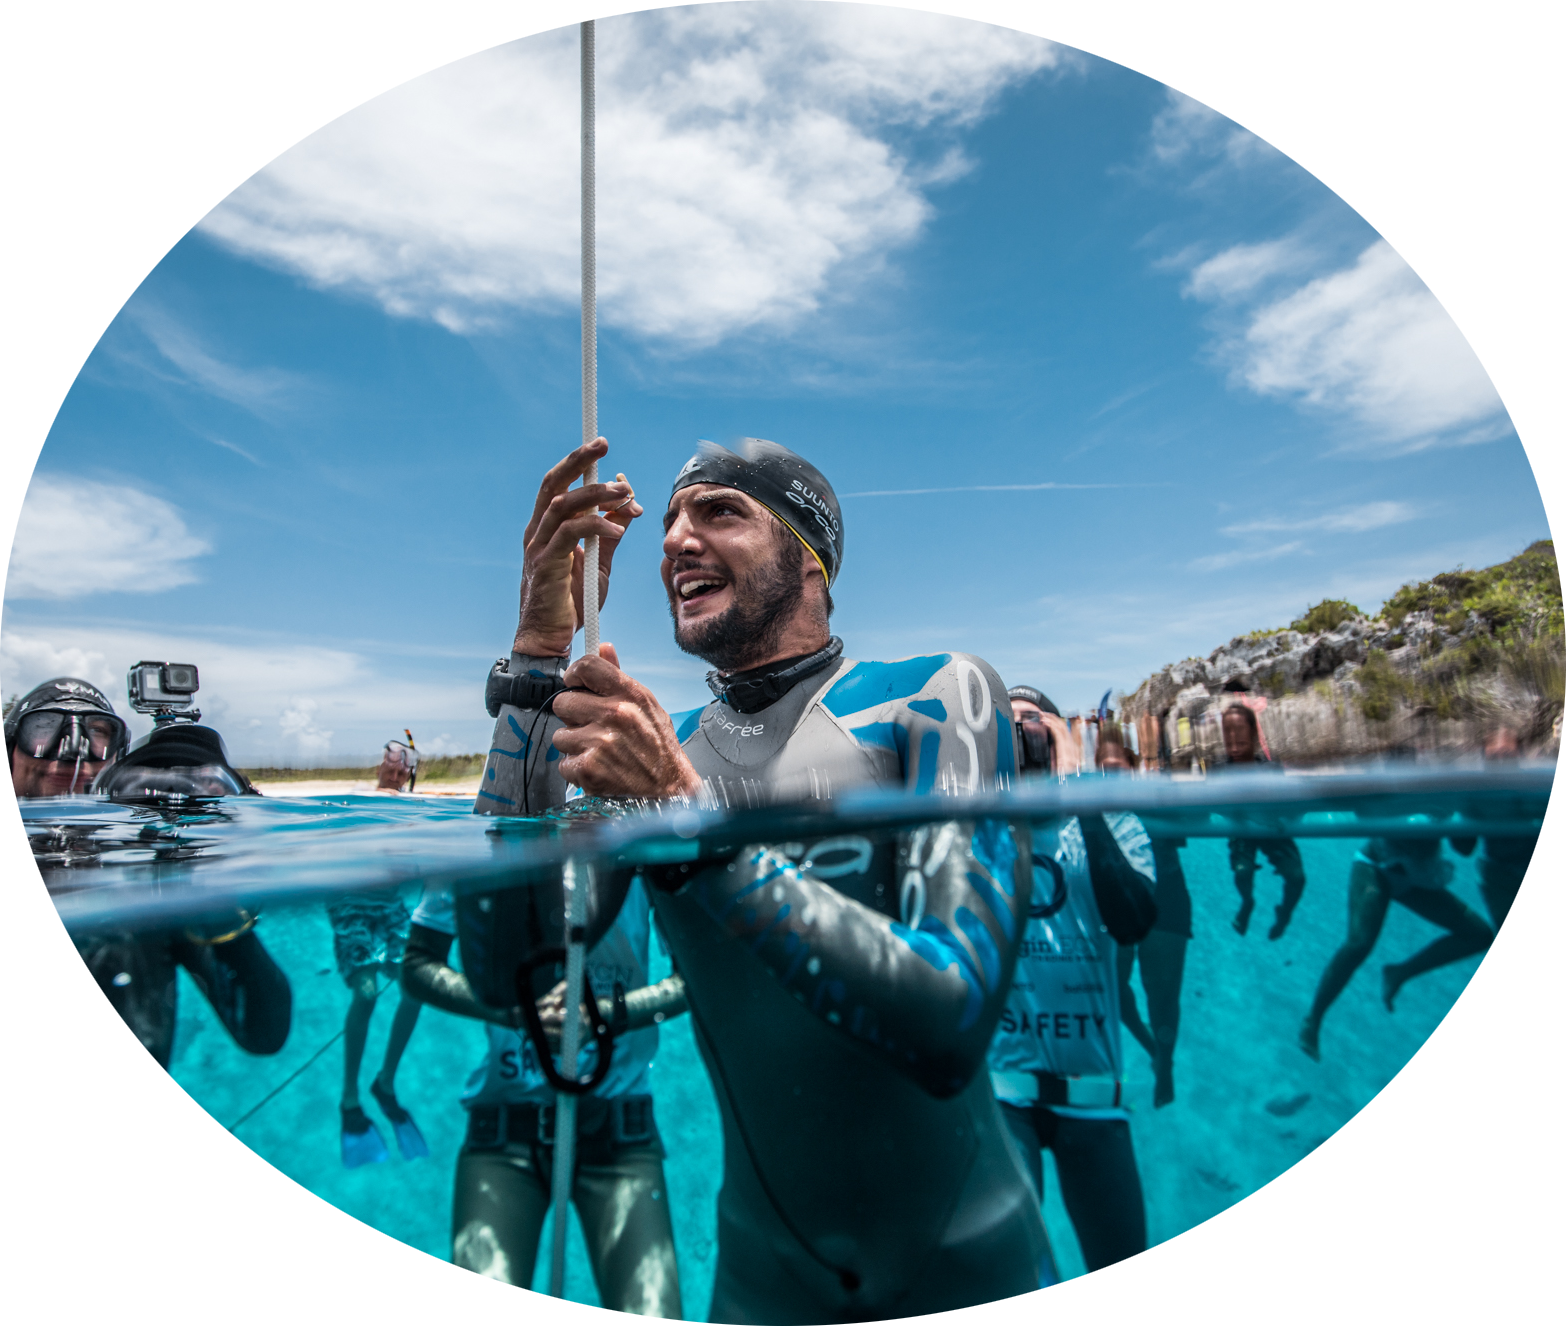 Functional Freediving